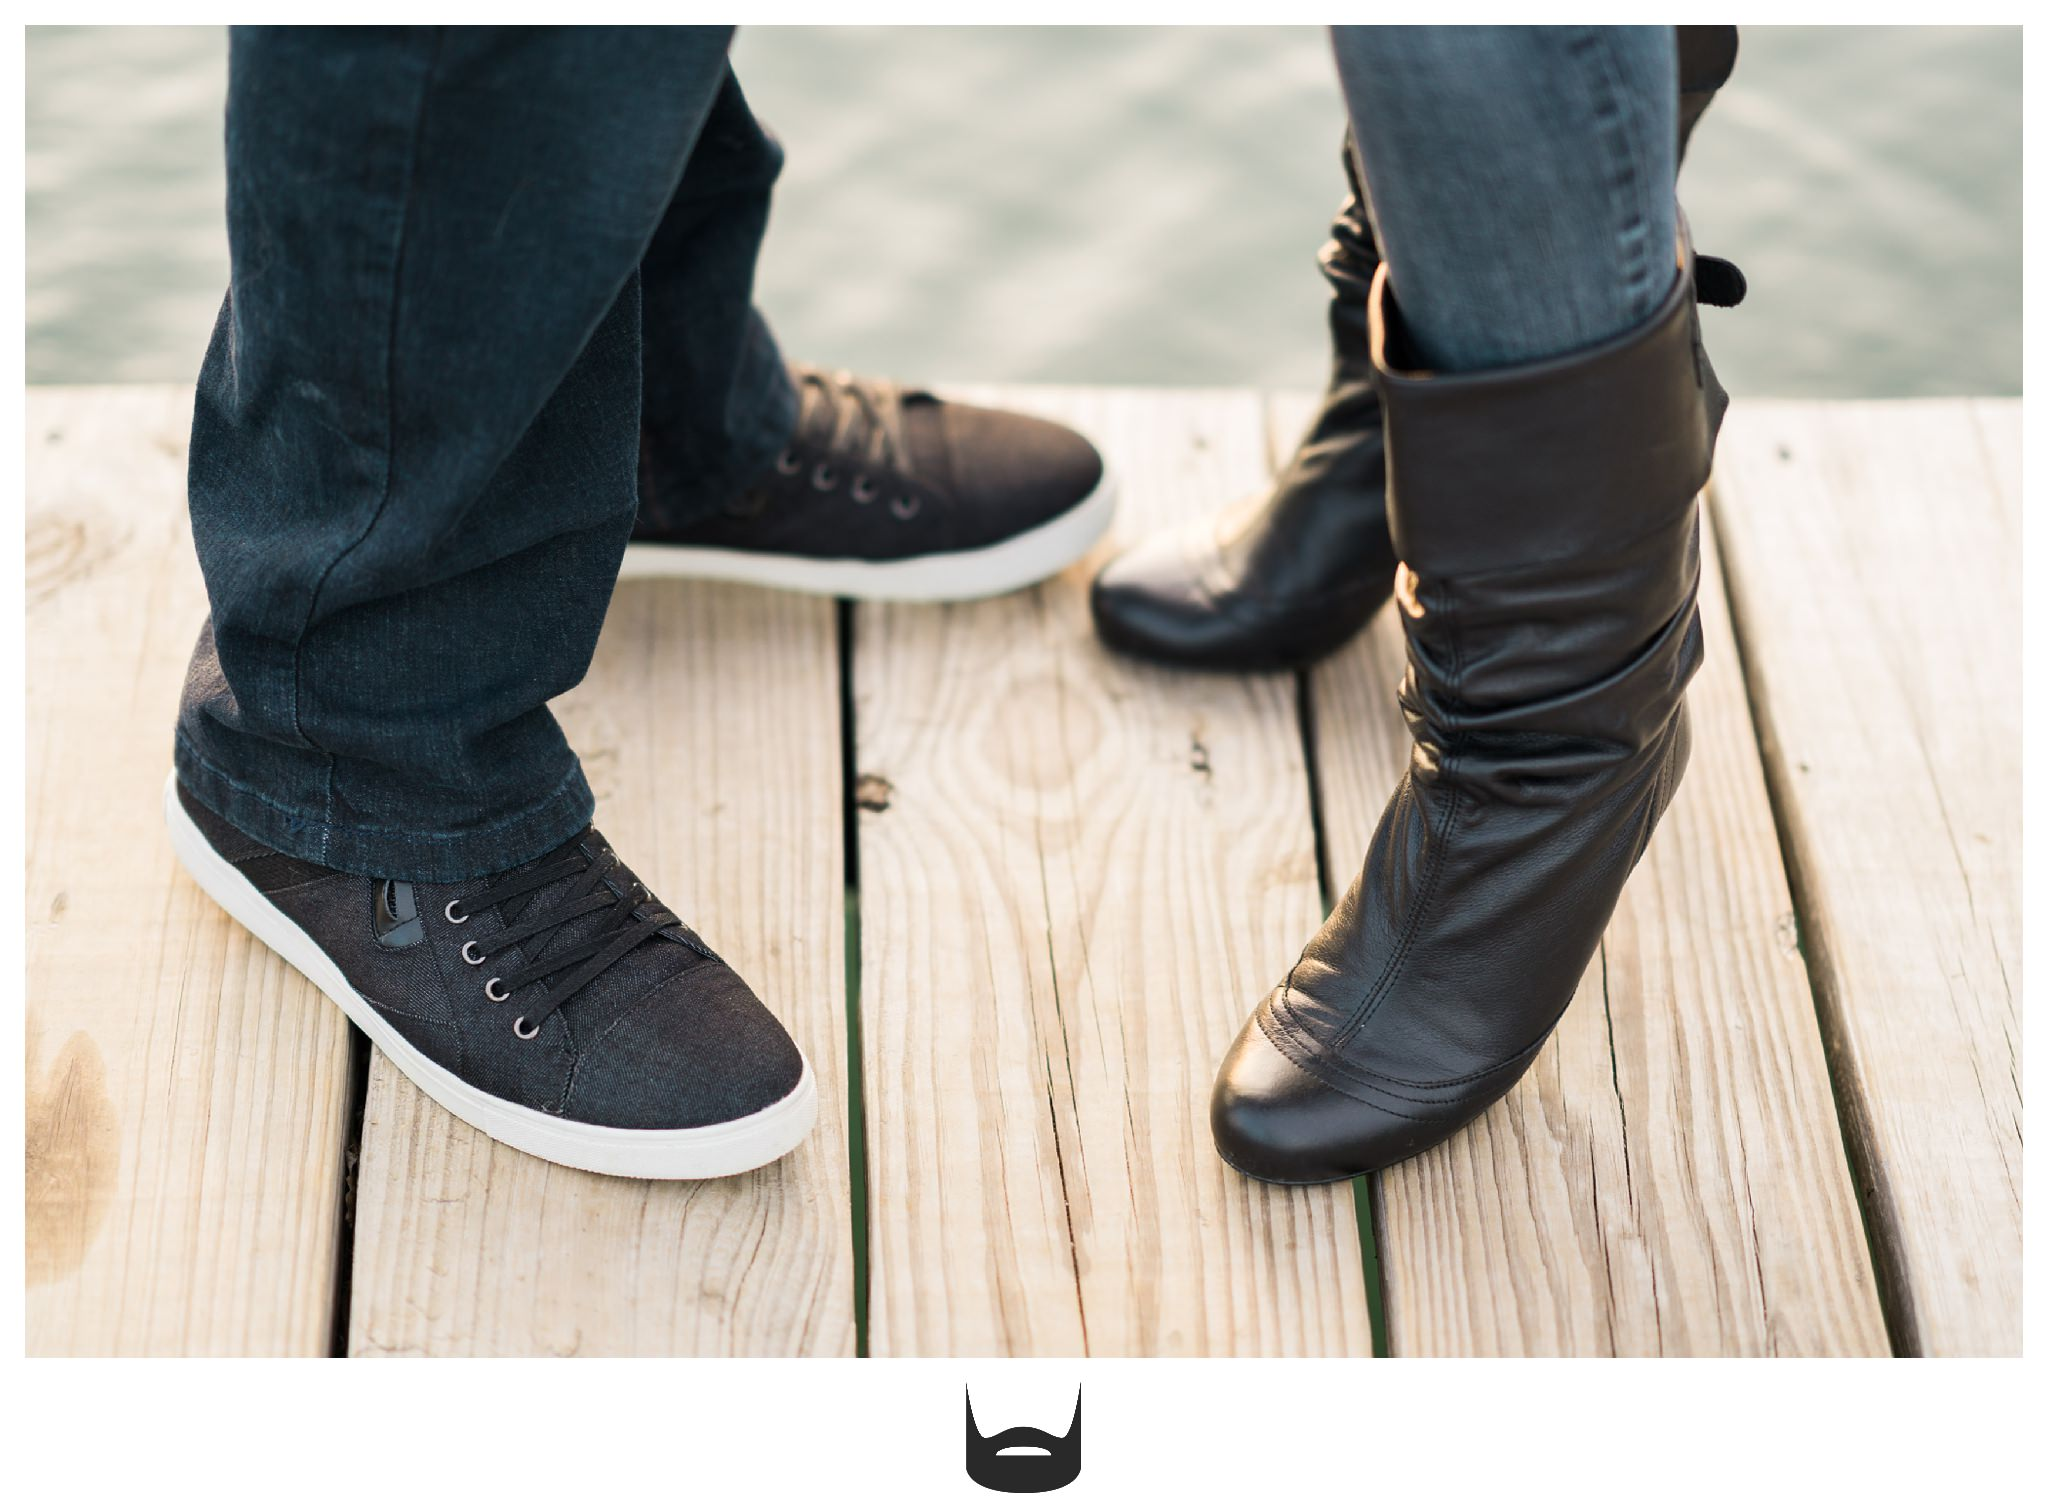 des moines engagement photography shoes